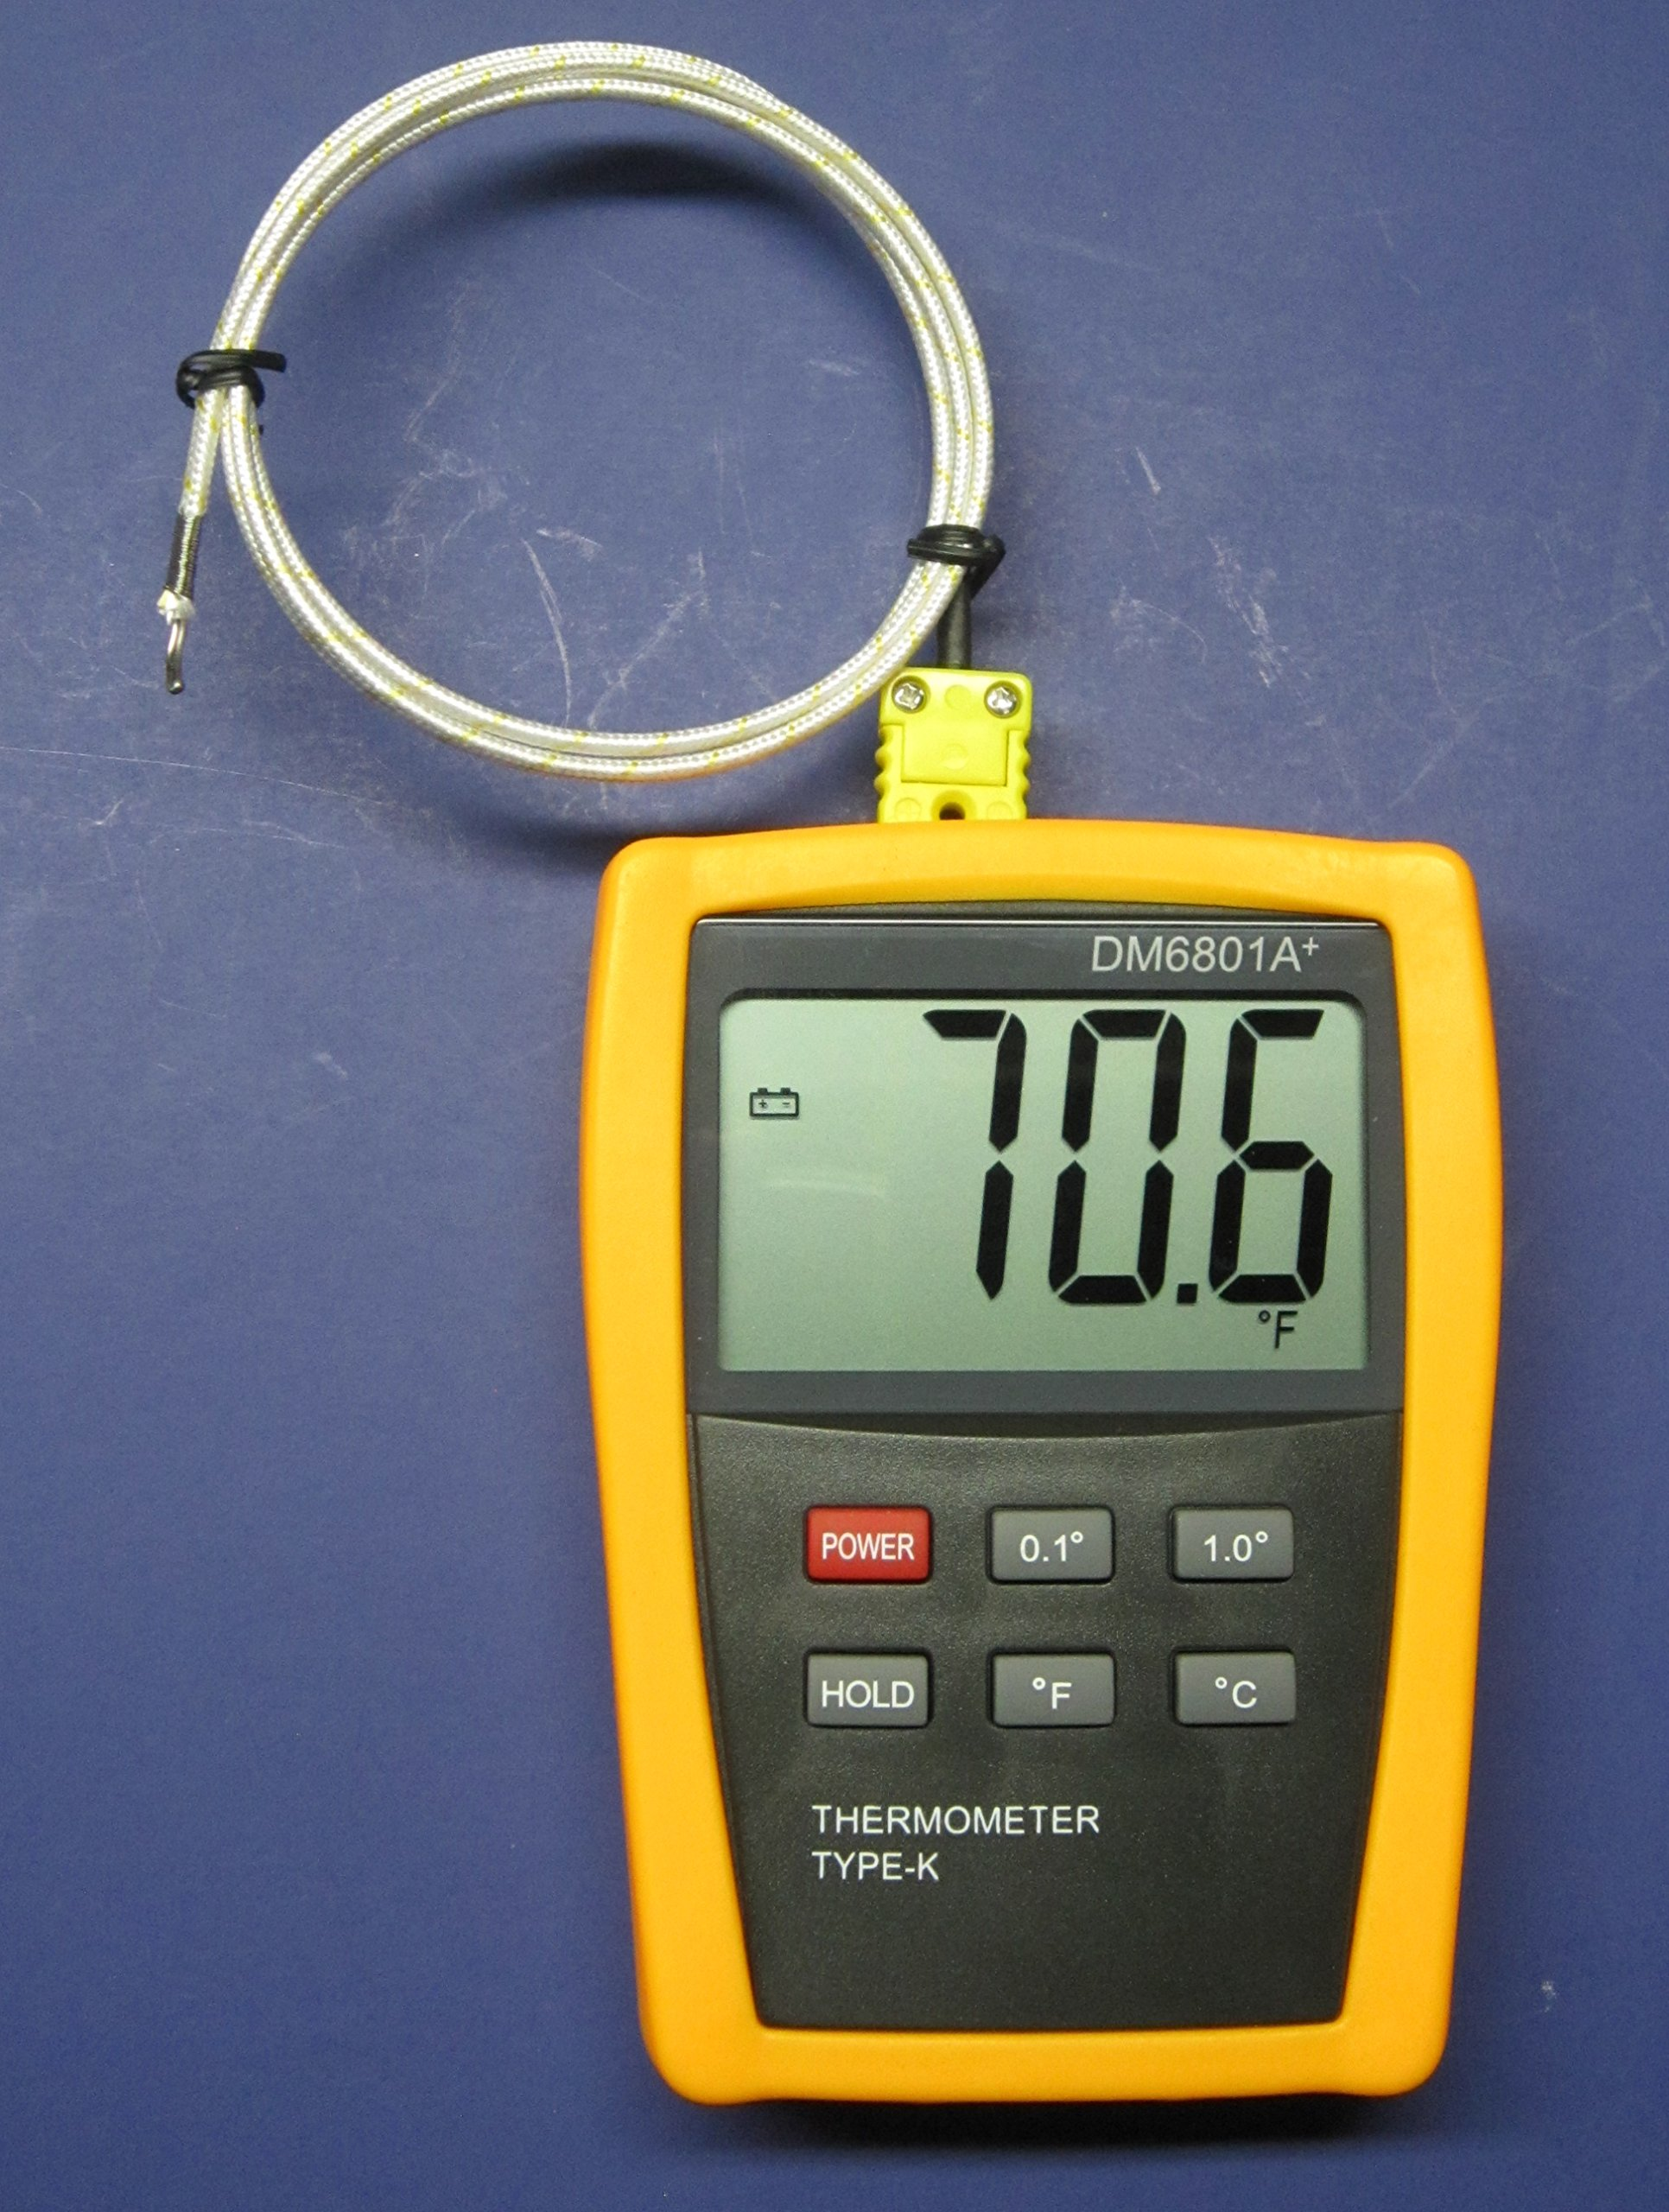 K-type Scientific Digital Thermometer DM6801 with high temperature thermocouple PK-1000